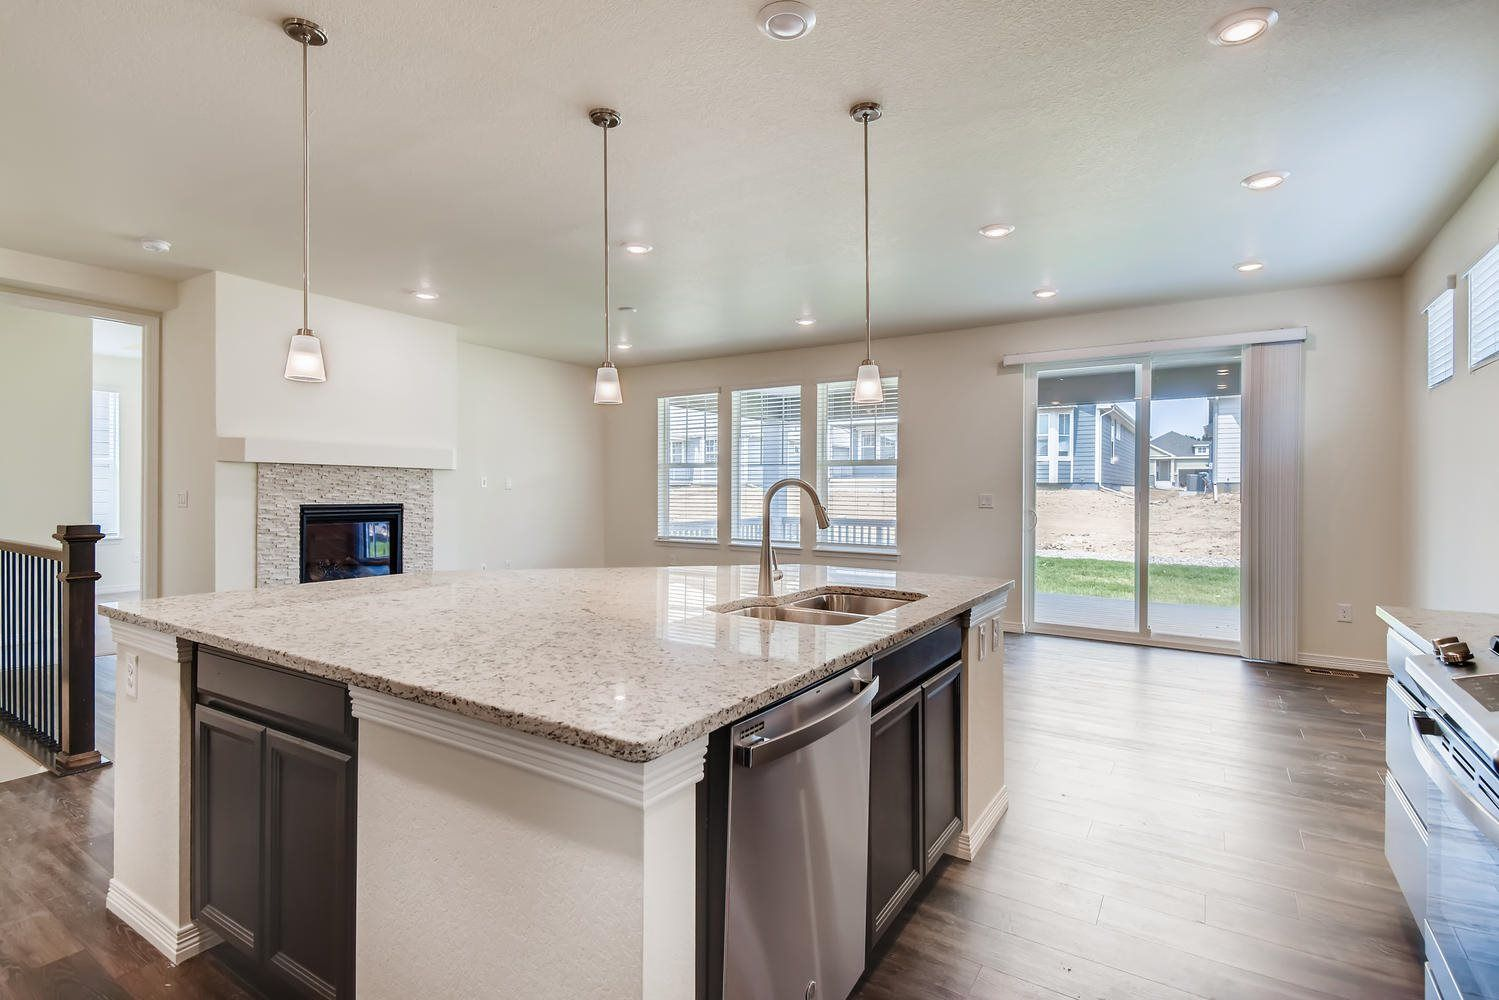 Kitchen featured in the Oxford By Lennar in Denver, CO